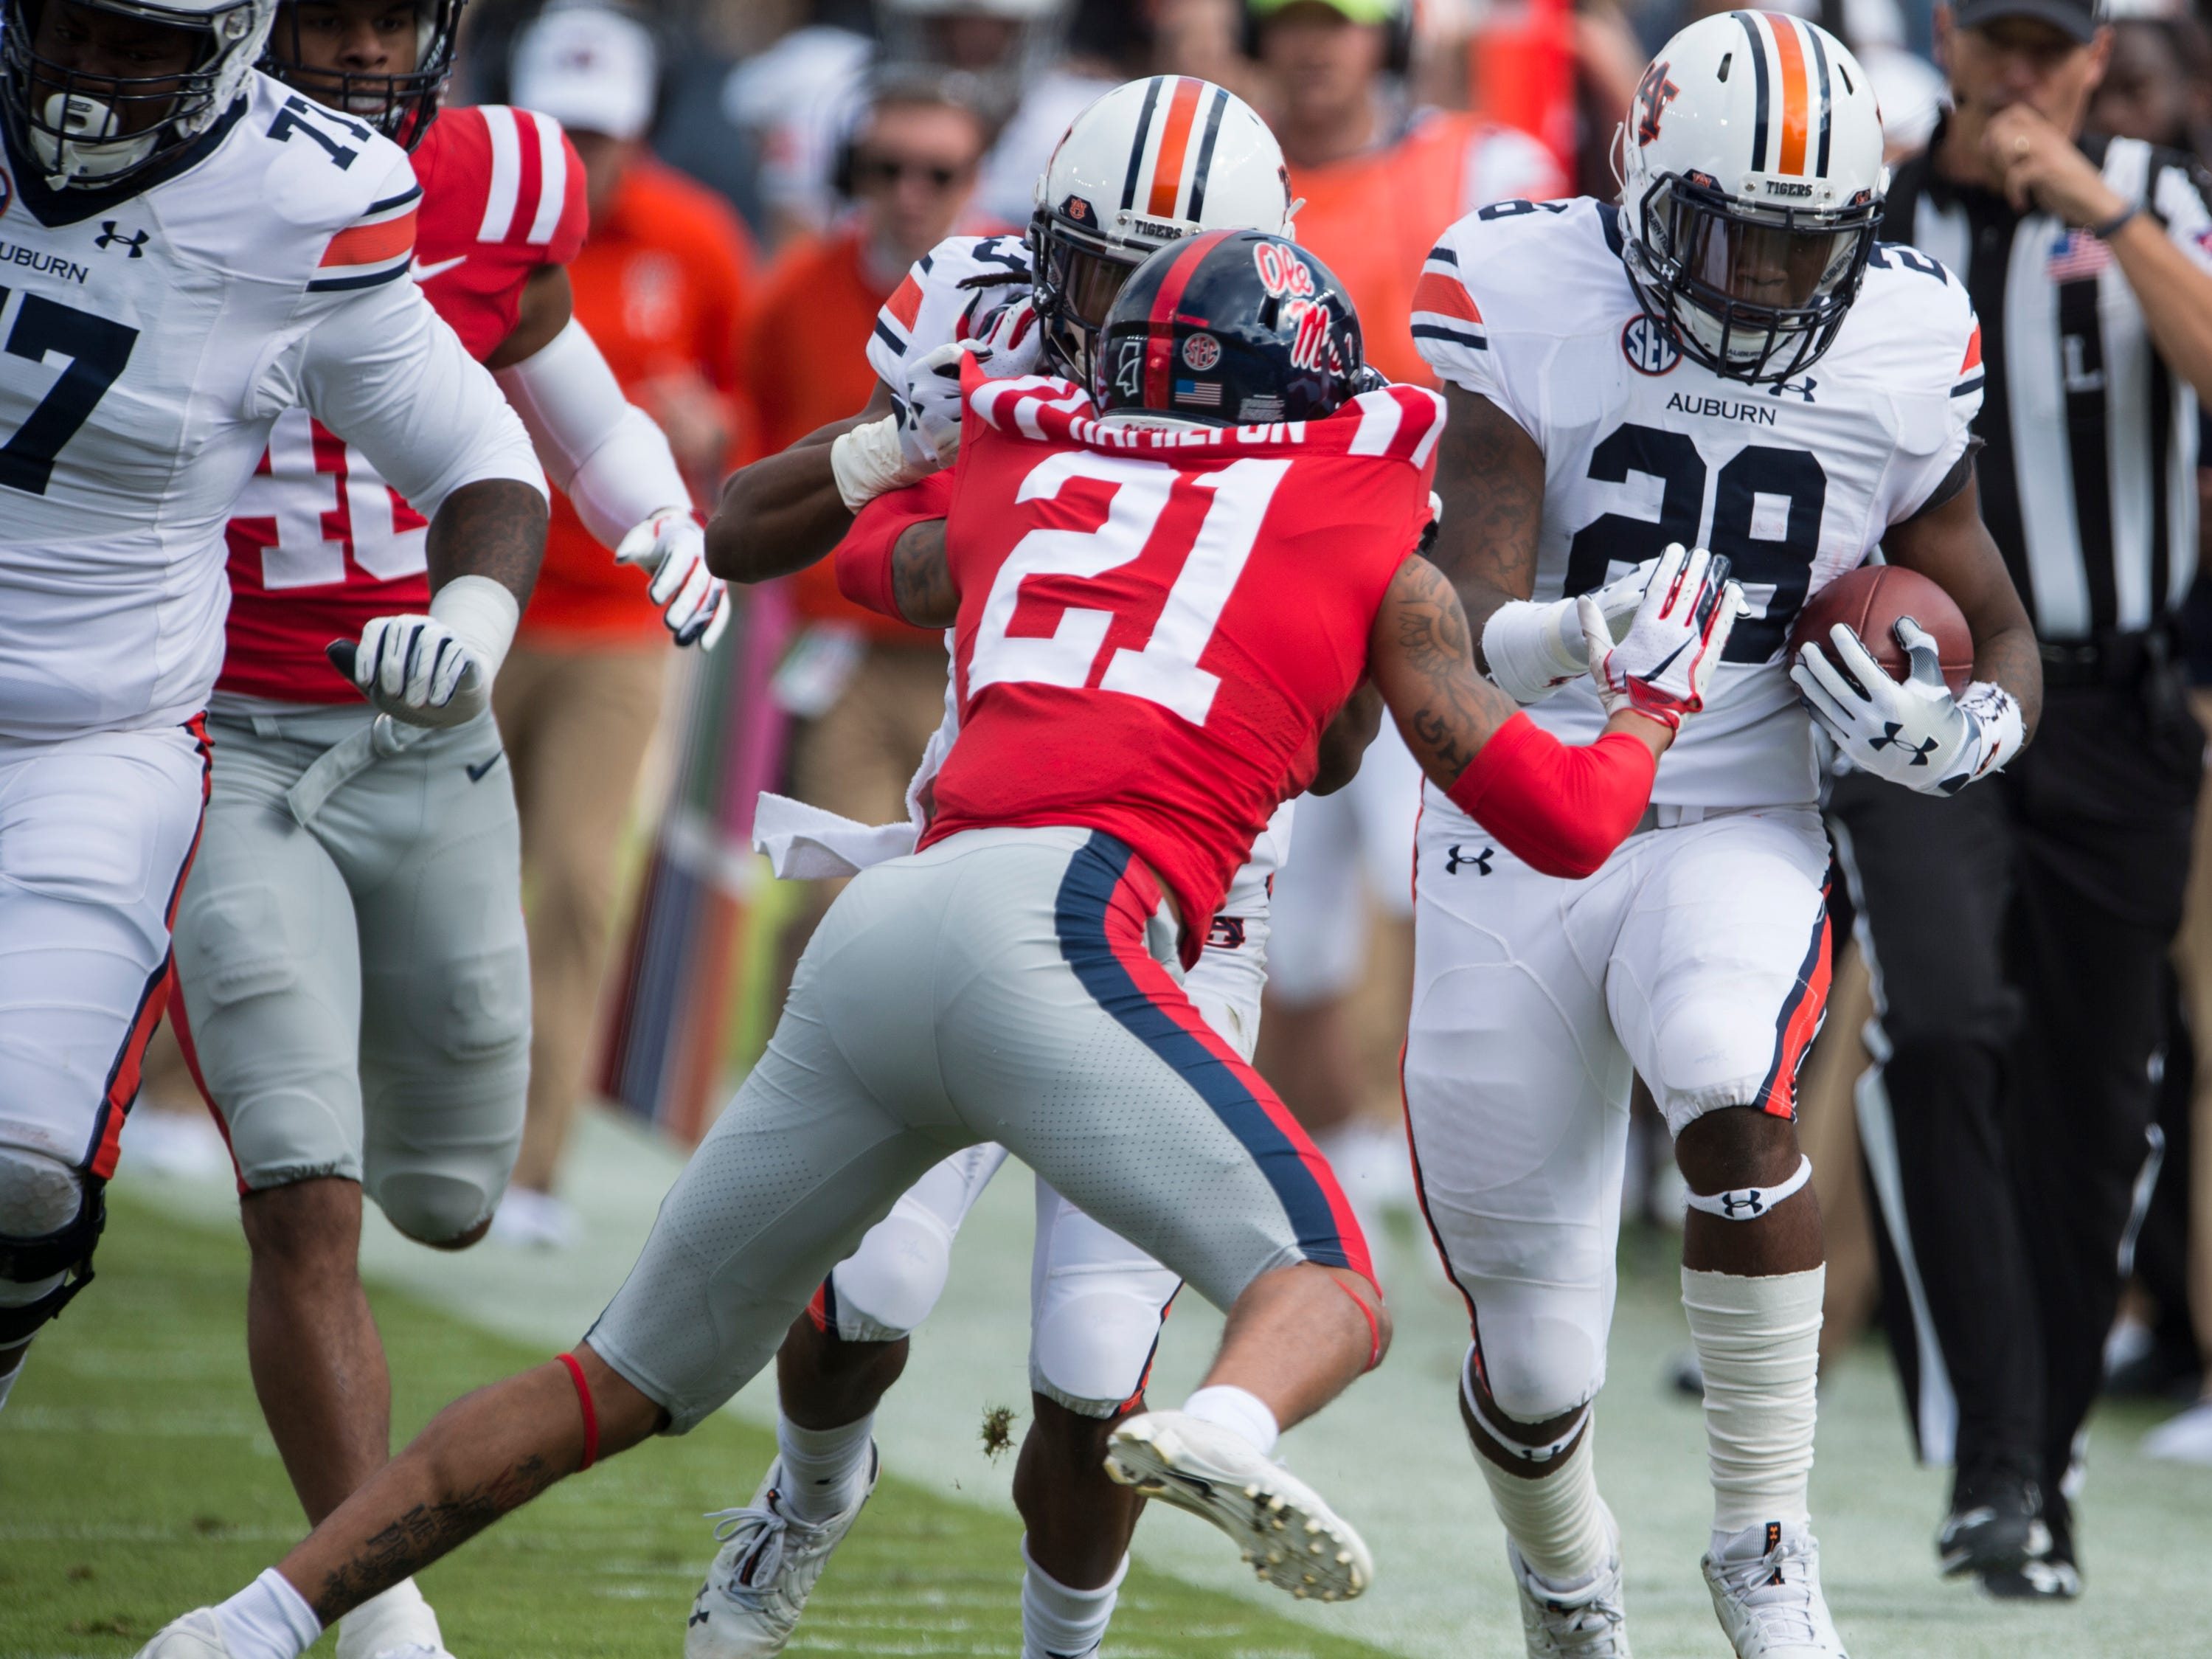 Auburn's JaTarvious Whitlow (28) toes the sideline as he runs the ball down the field at Vaught-Hemingway Stadium in Oxford, Miss., on Saturday, Oct. 20, 2018. Auburn defeated Ole Miss 31-16.